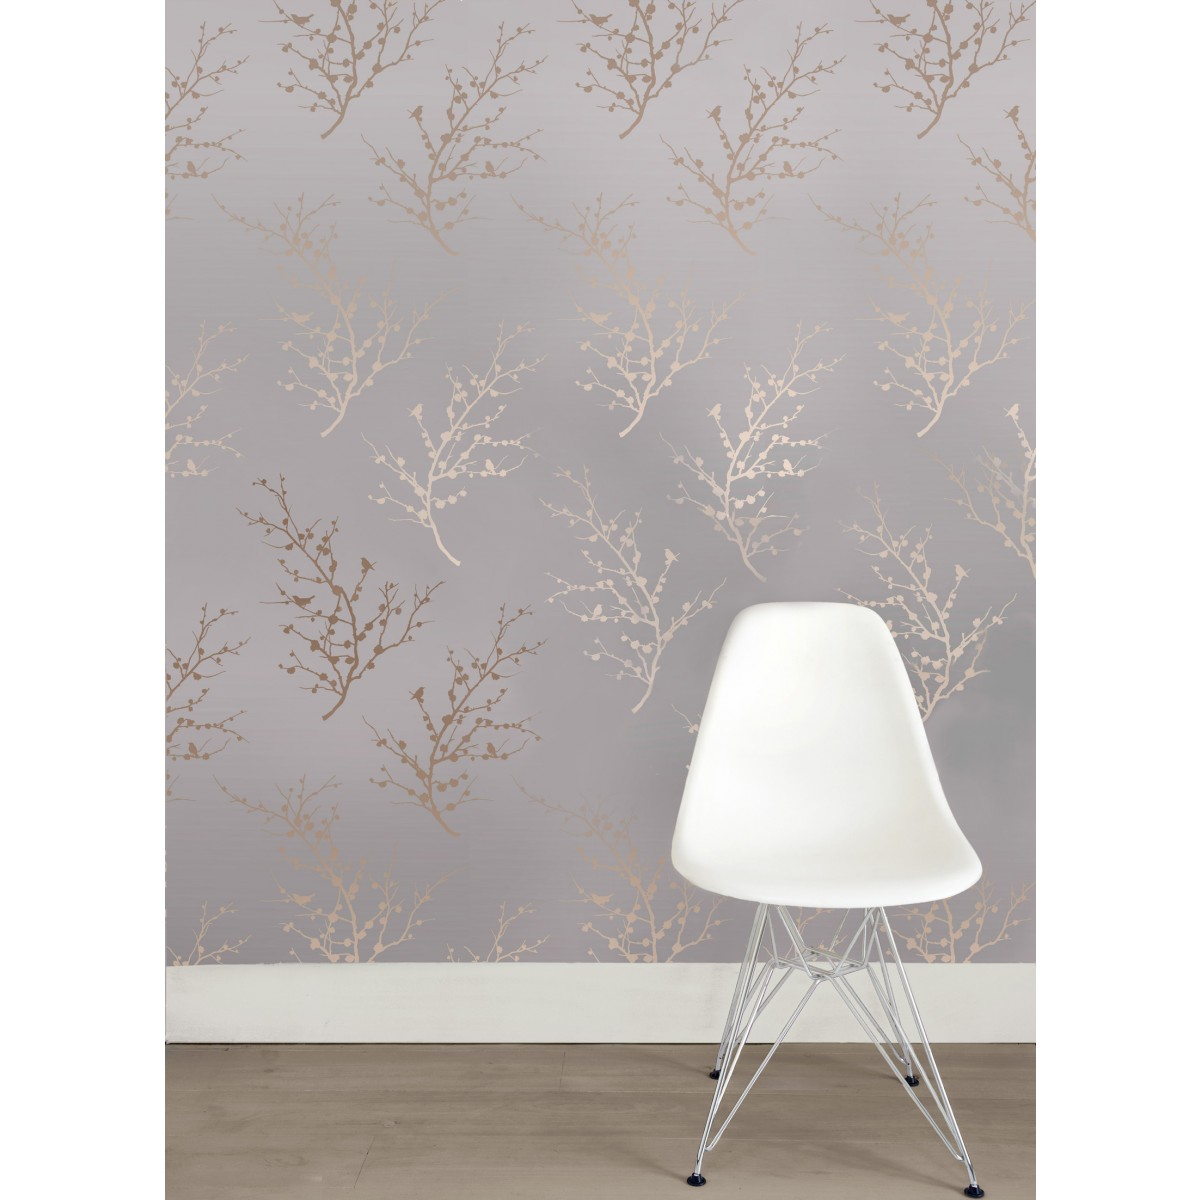 Tempaper EDIE Metallic Bronze Wallpaper   Tempaper Designs 1200x1200